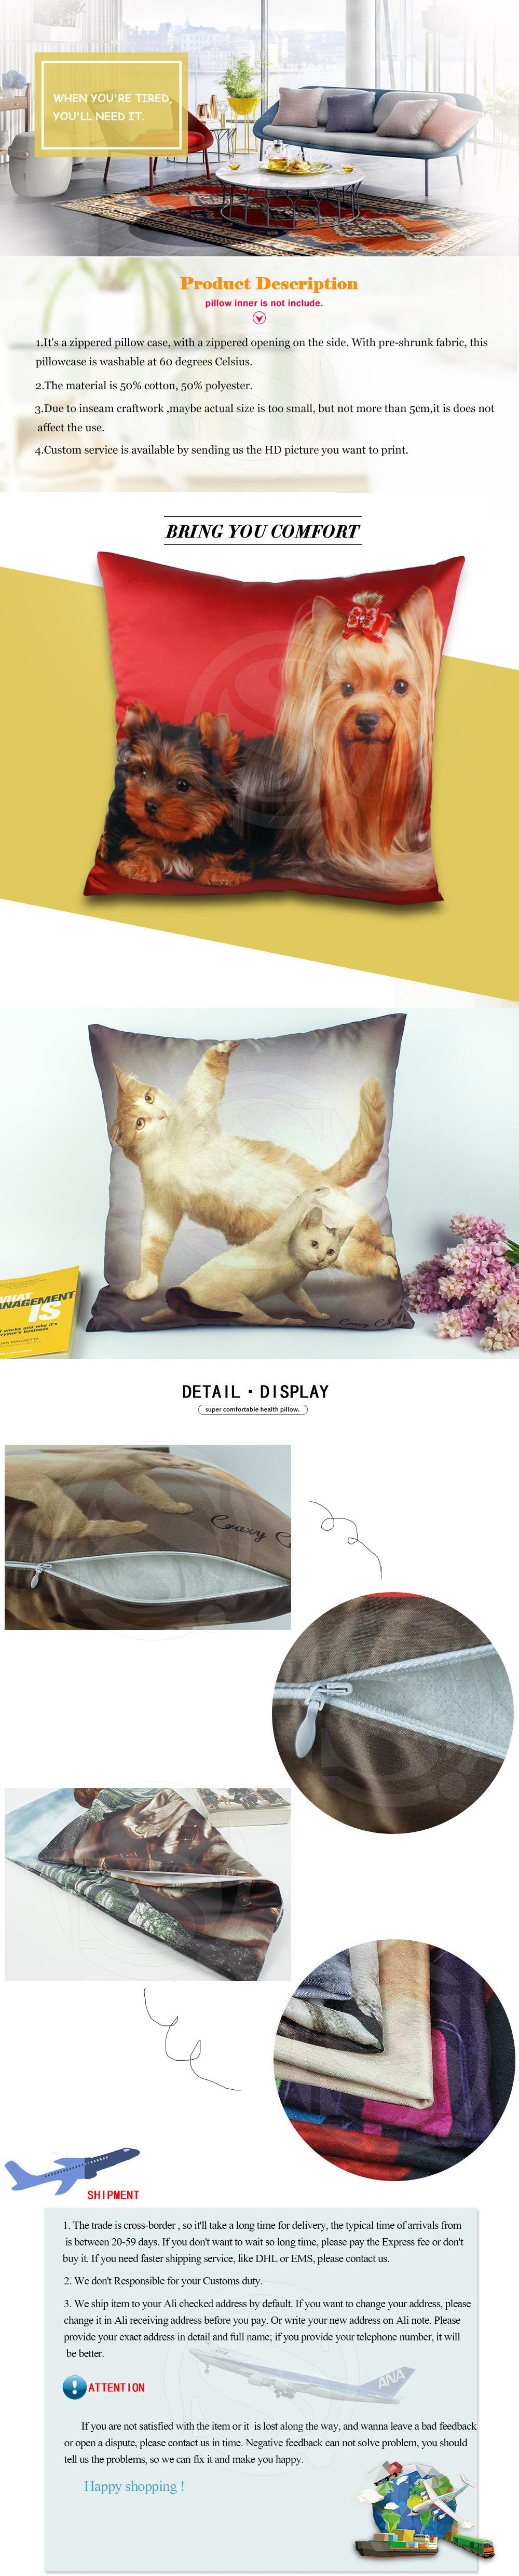 uk cases gallery mr pillowcases personalised pillow customized blanket mrs cheap cushion